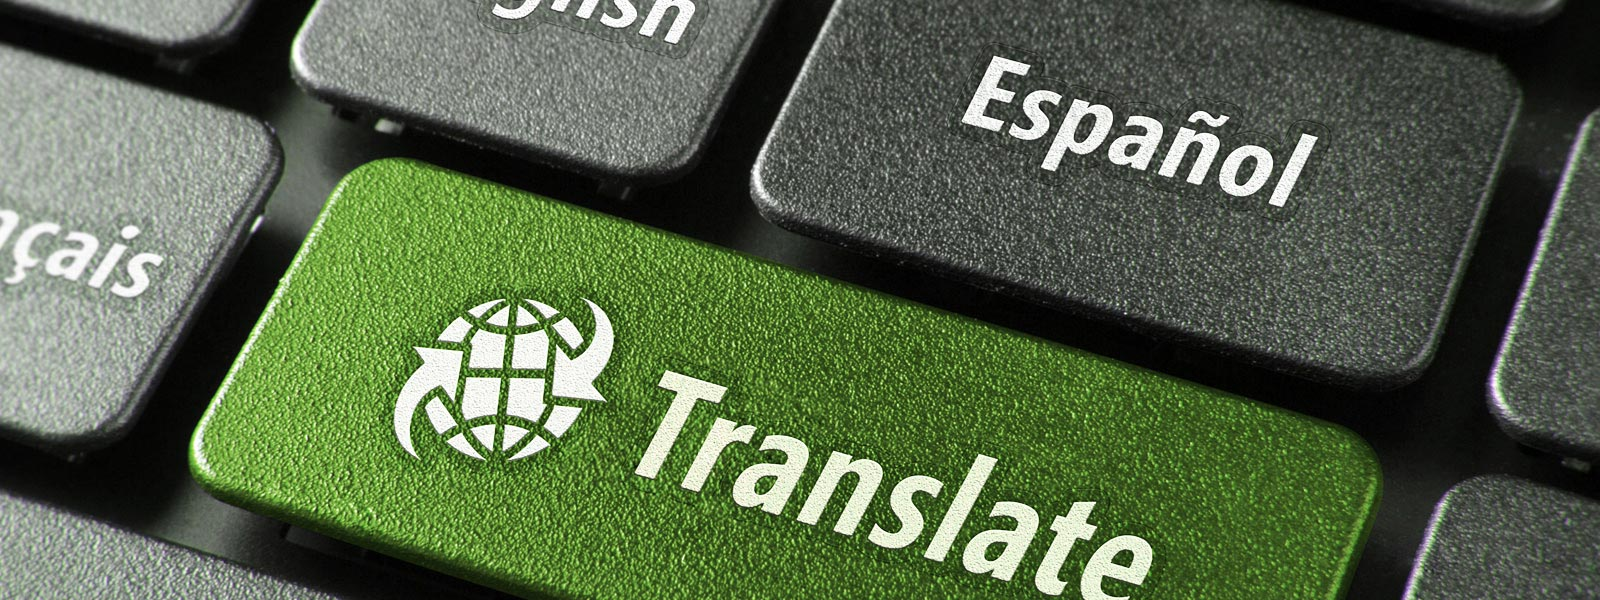 High Quality and Accurate Translation and Interpretation services in many languages - We Talk Your Language